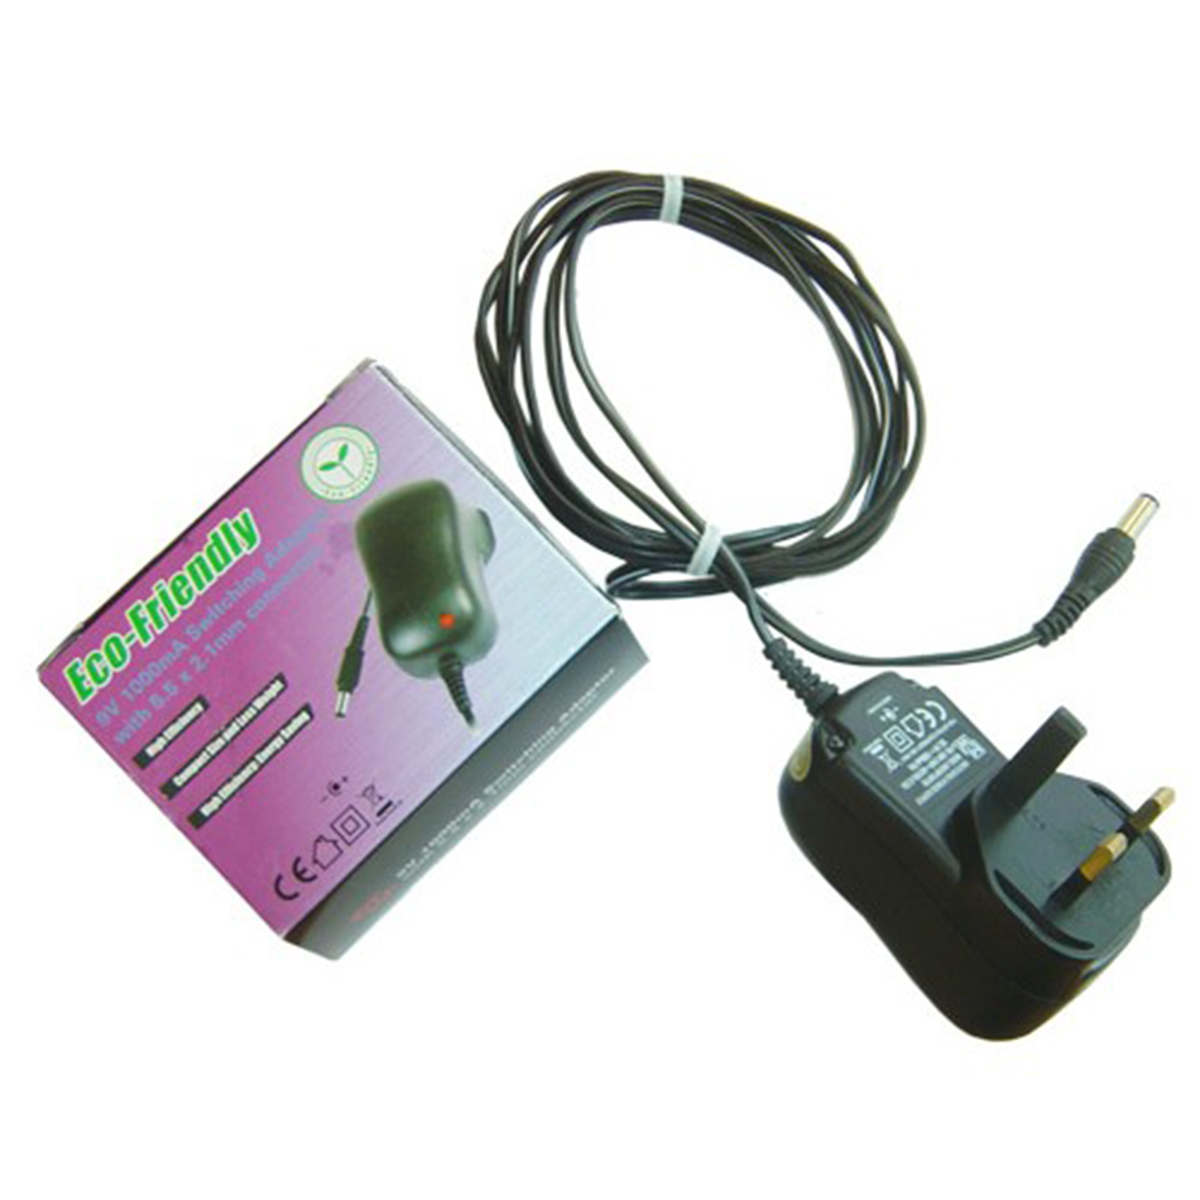 PinPod external power supply unit